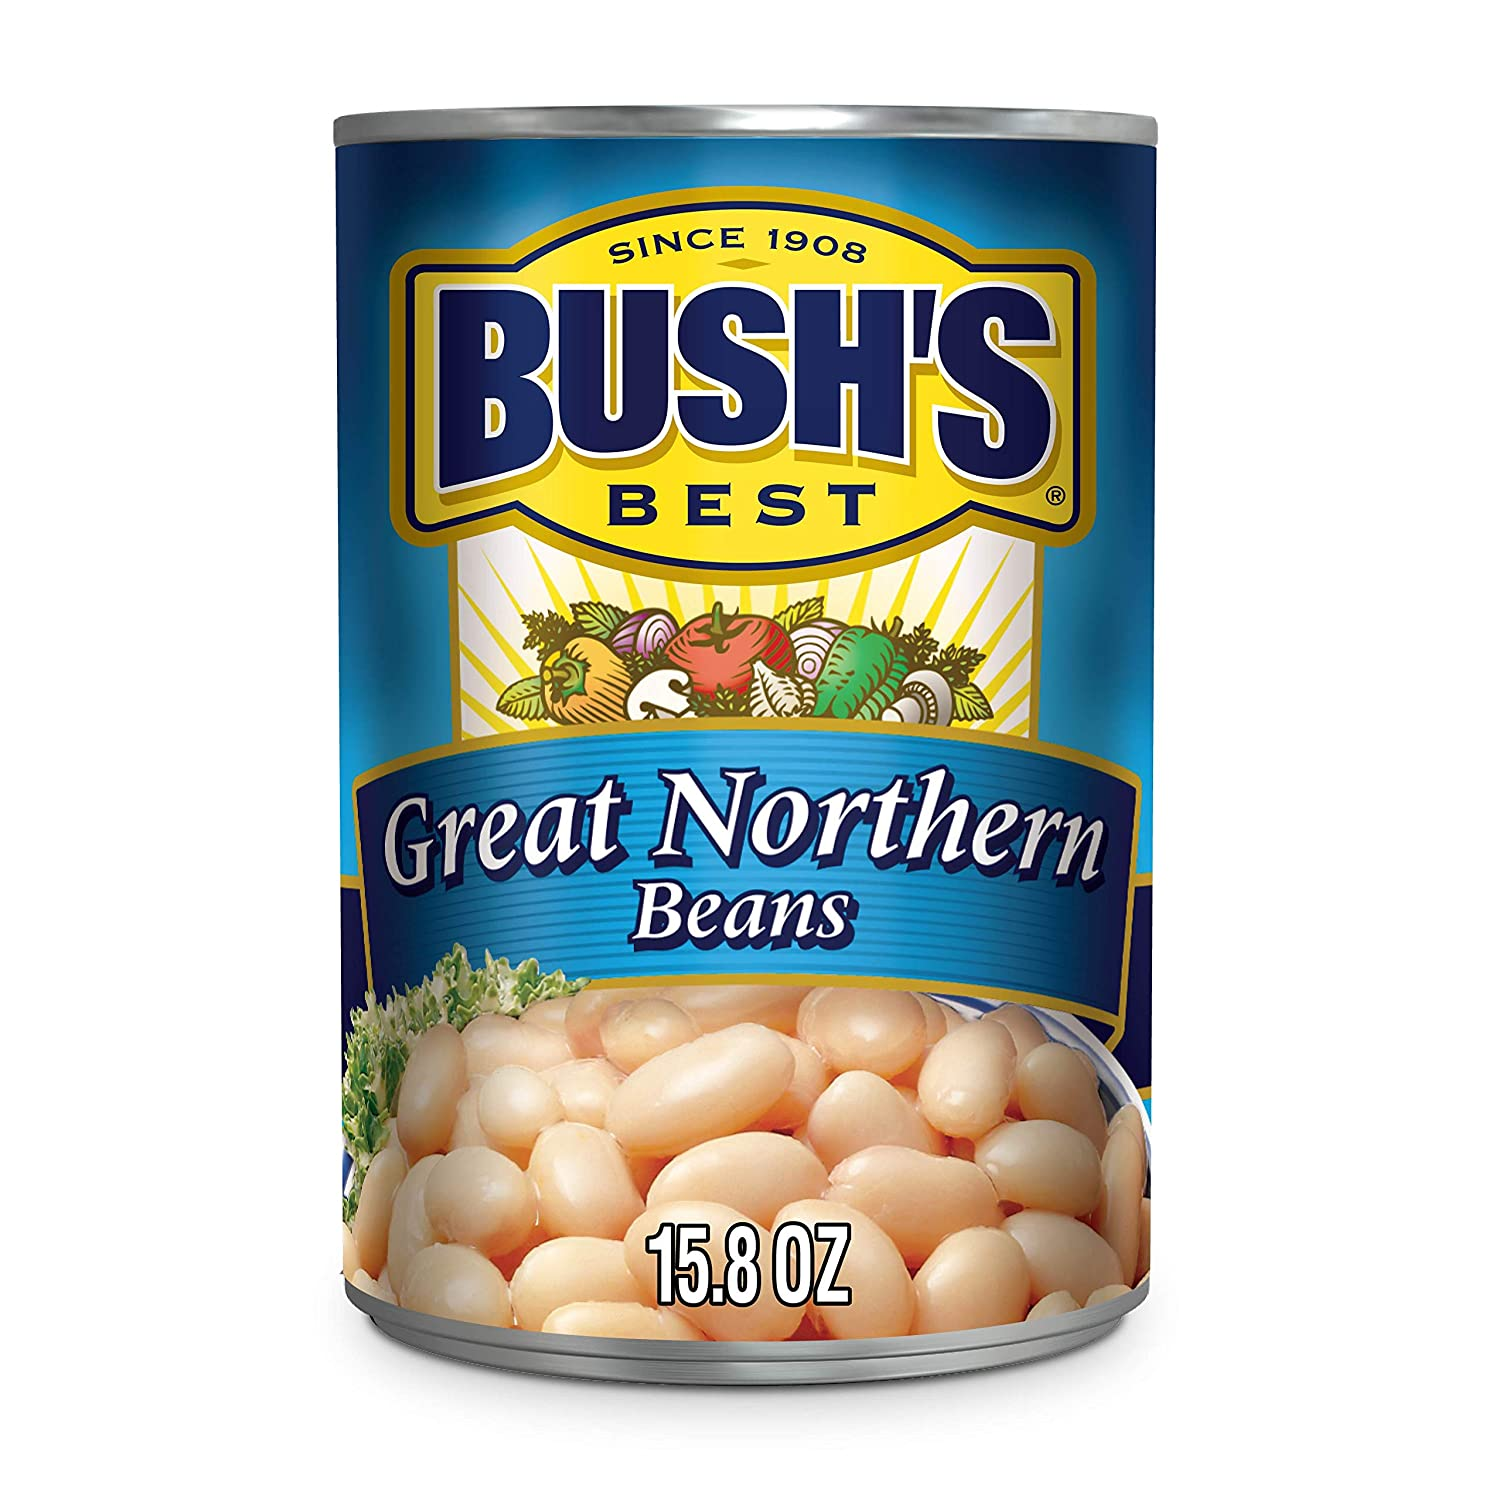 BUSH'S BEST Canned Great Northern Beans